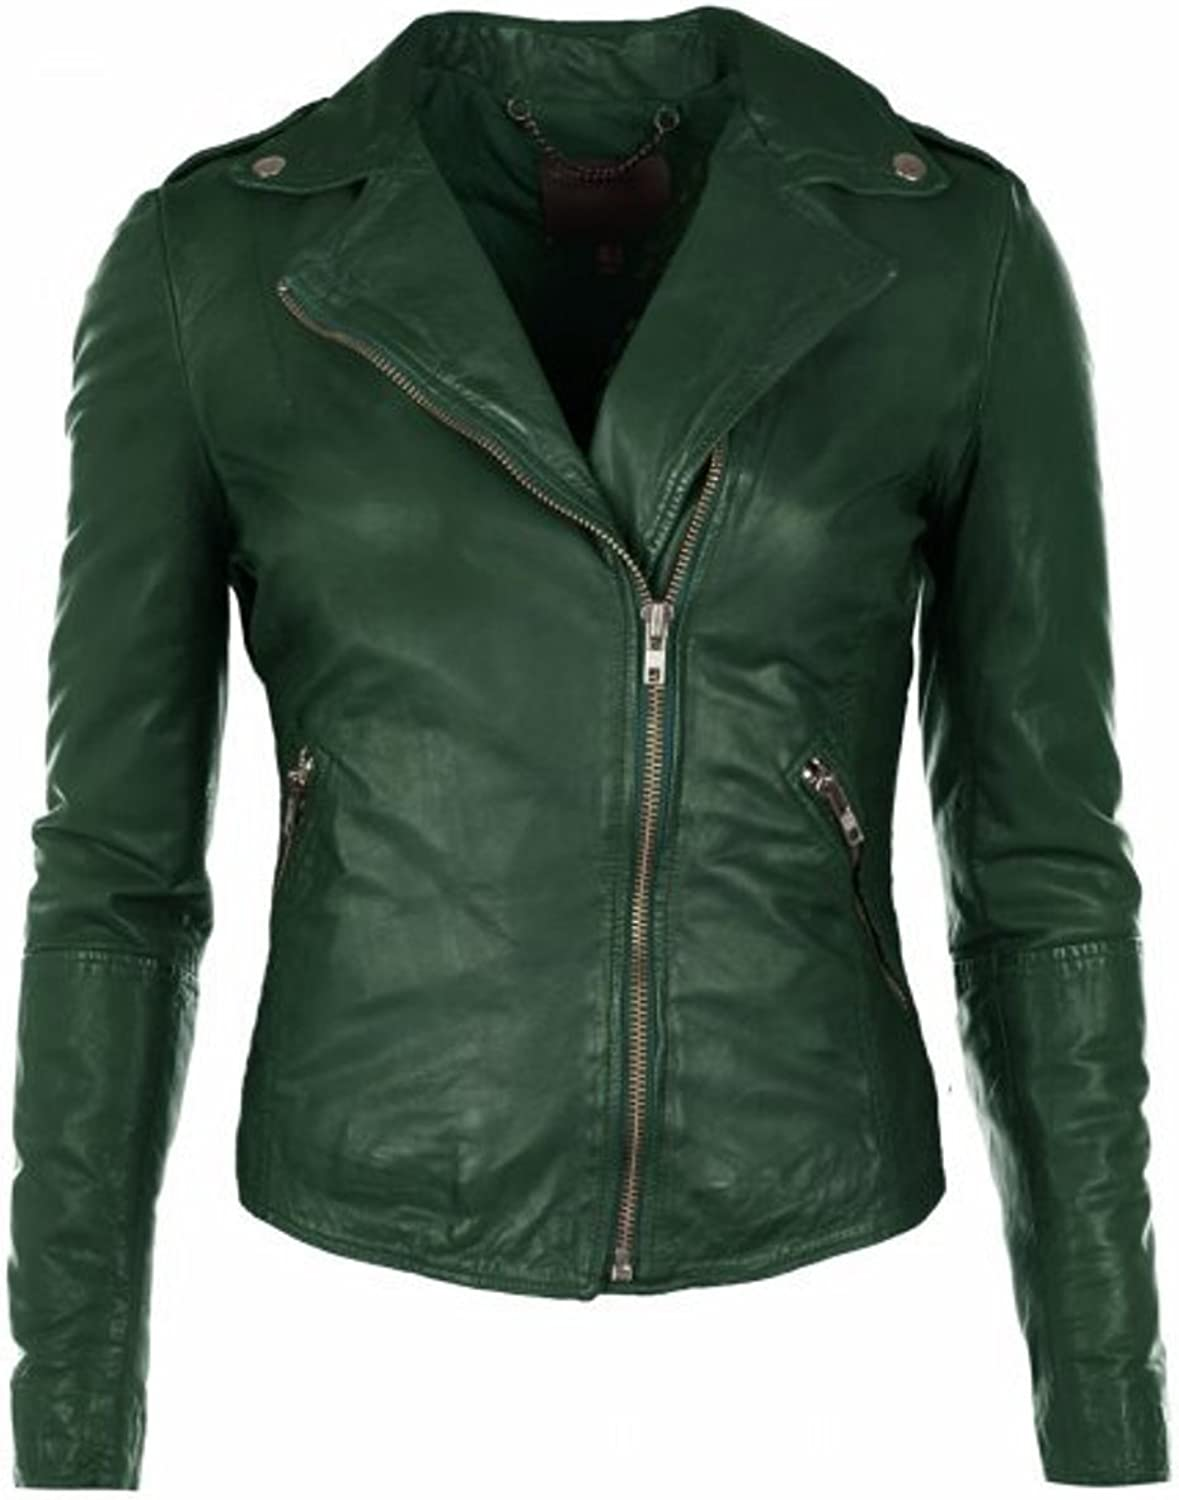 DOLLY LAMB Womens Leather Jacket Genuine Lambskin Green Womens Biker Zipper Jacket XS to XXL with Long Zipper on Sleeves